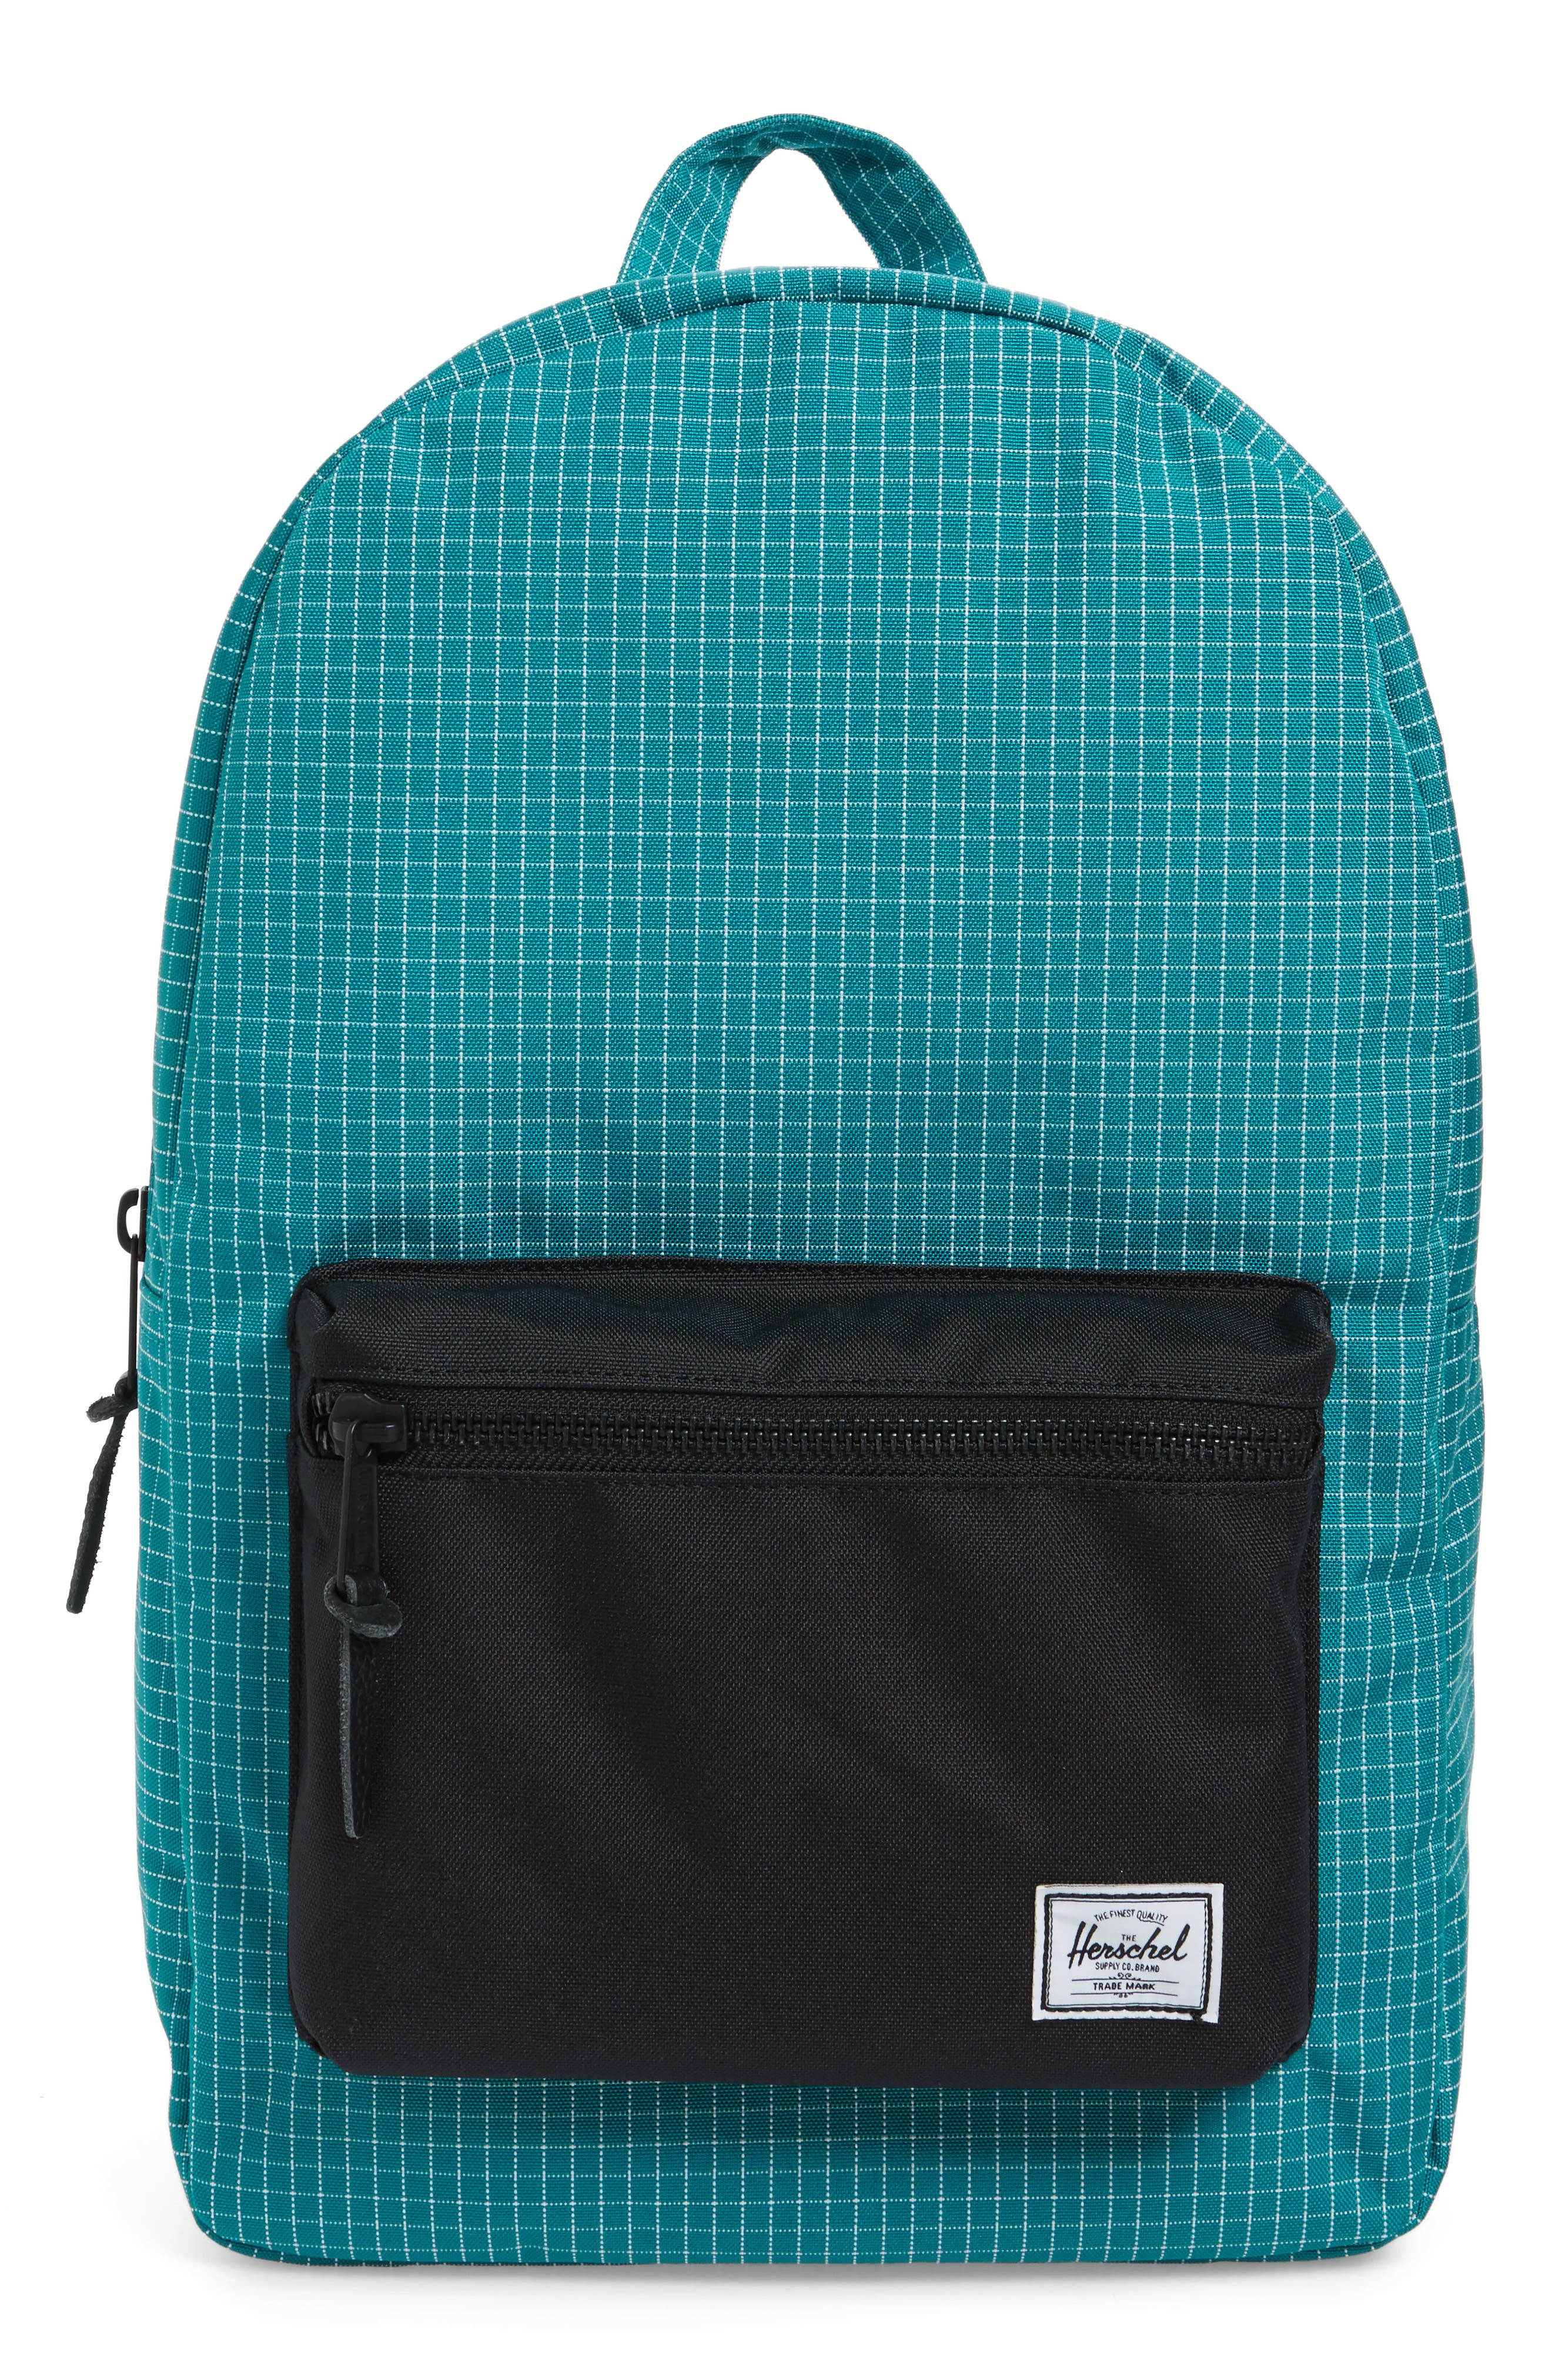 Main Image - Herschel Supply Co. Pop Quiz Backpack